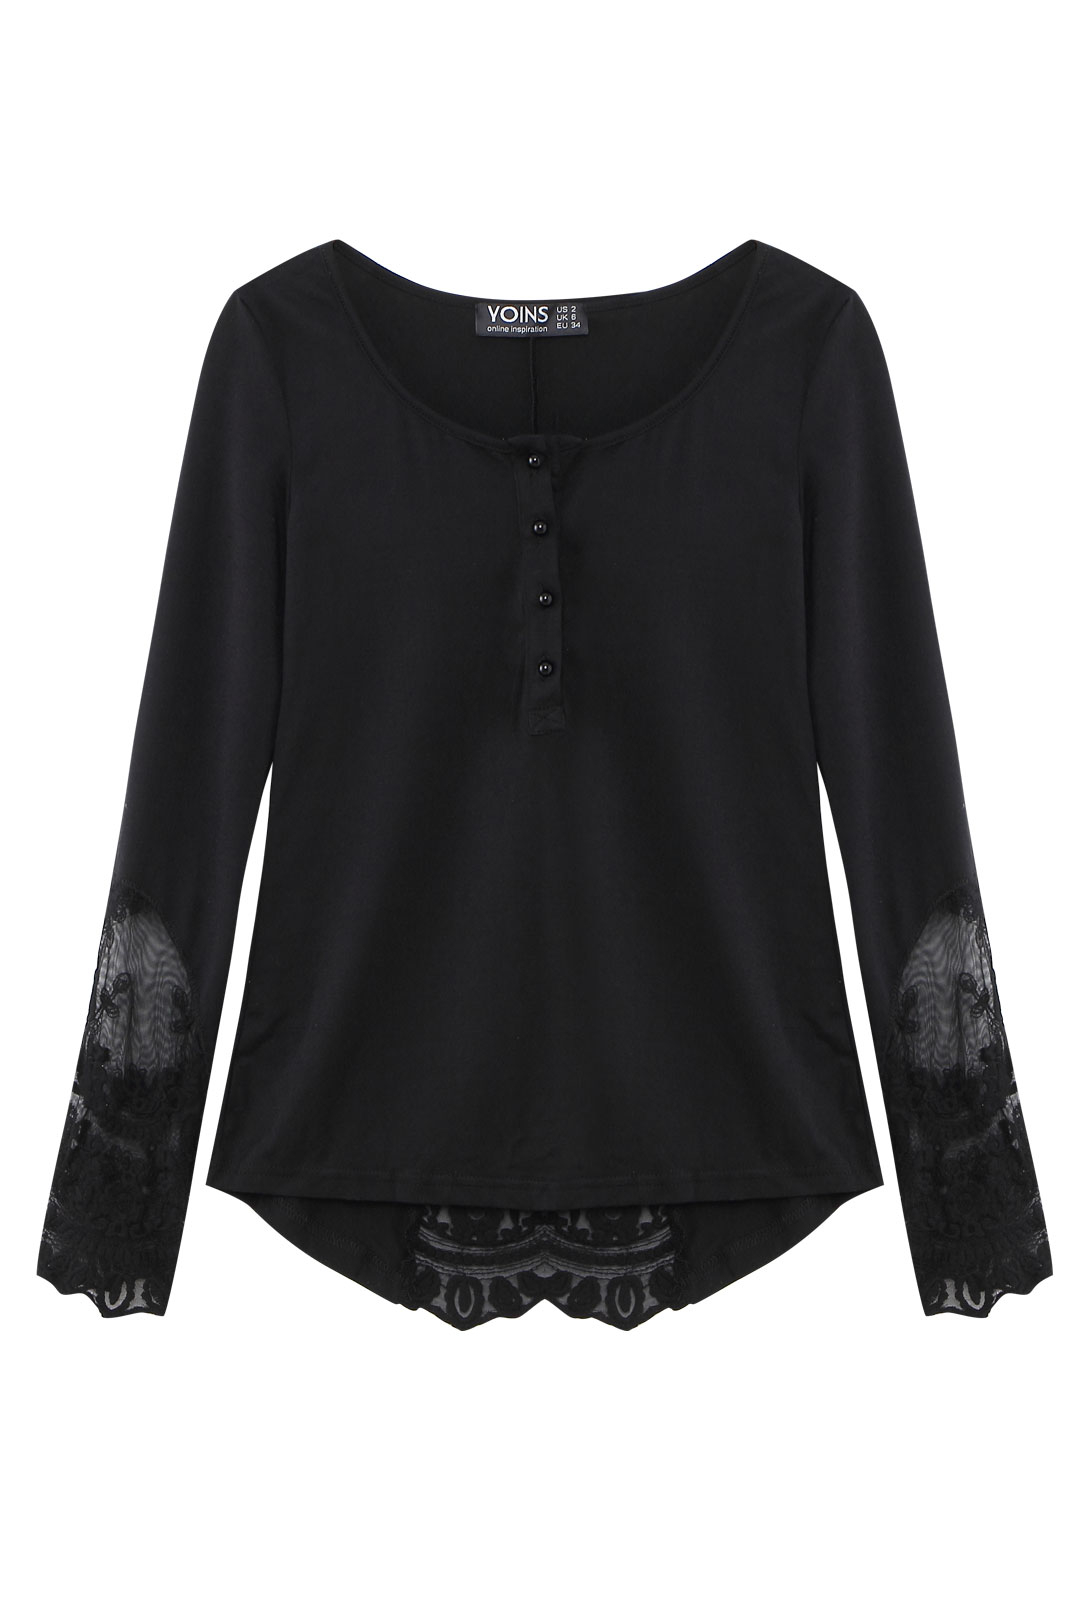 Yoins coupon: Black Lace Insert Bell Sleeve Blouse